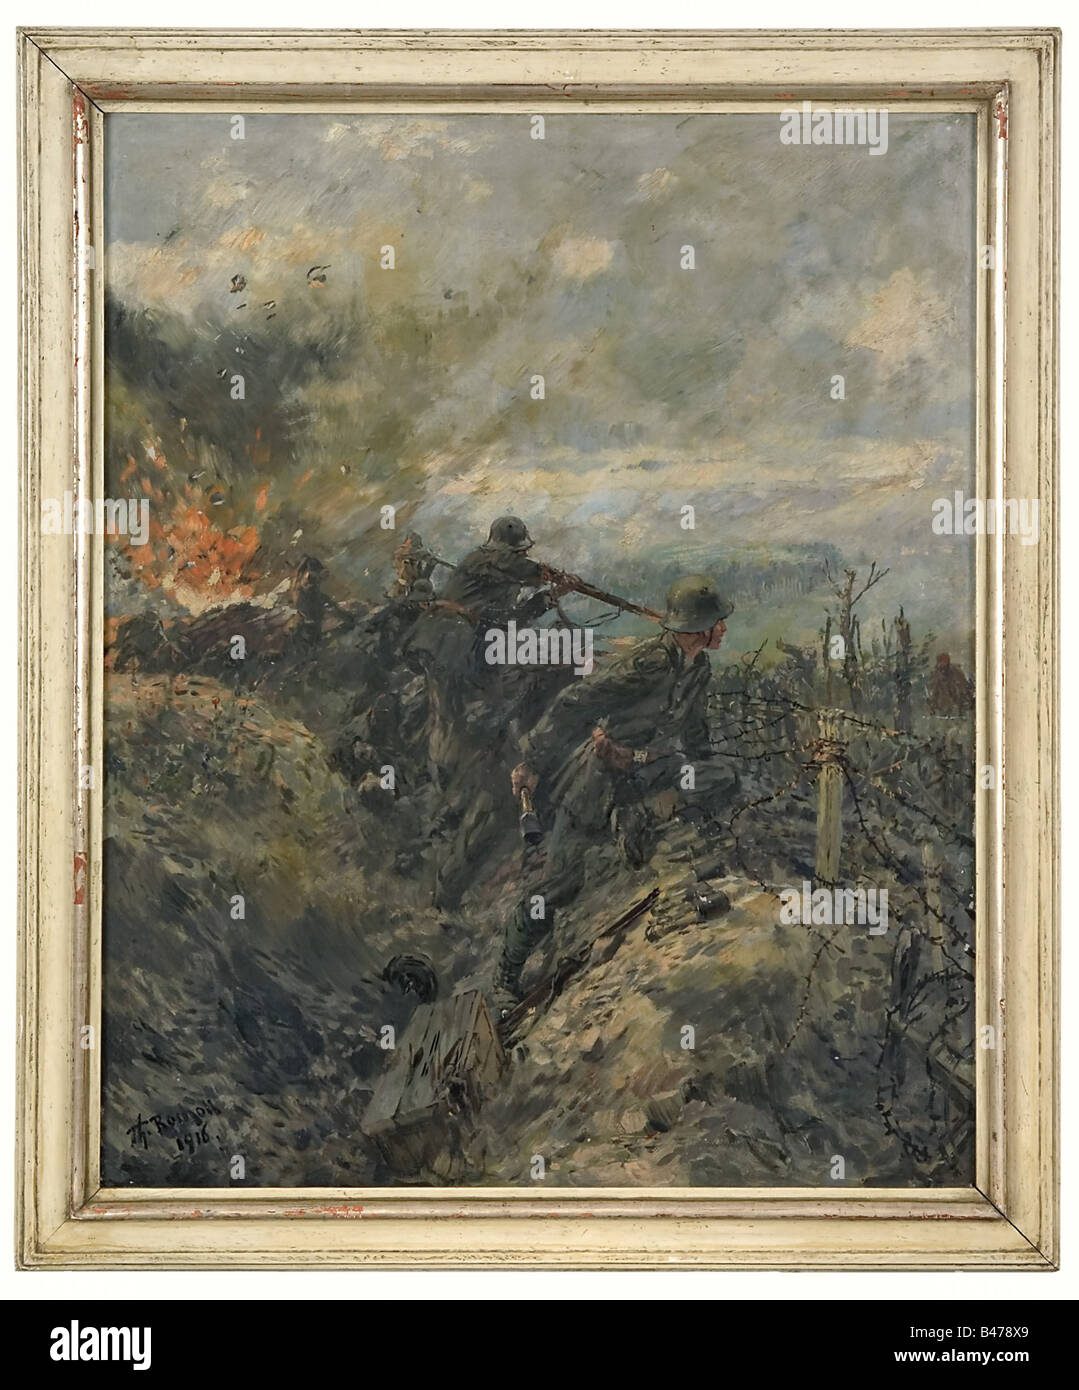 Theodor Rocholl - 'Battle for Hill 265'., Depiction of German infantrymen in a trench fighting off attacking - Stock Image